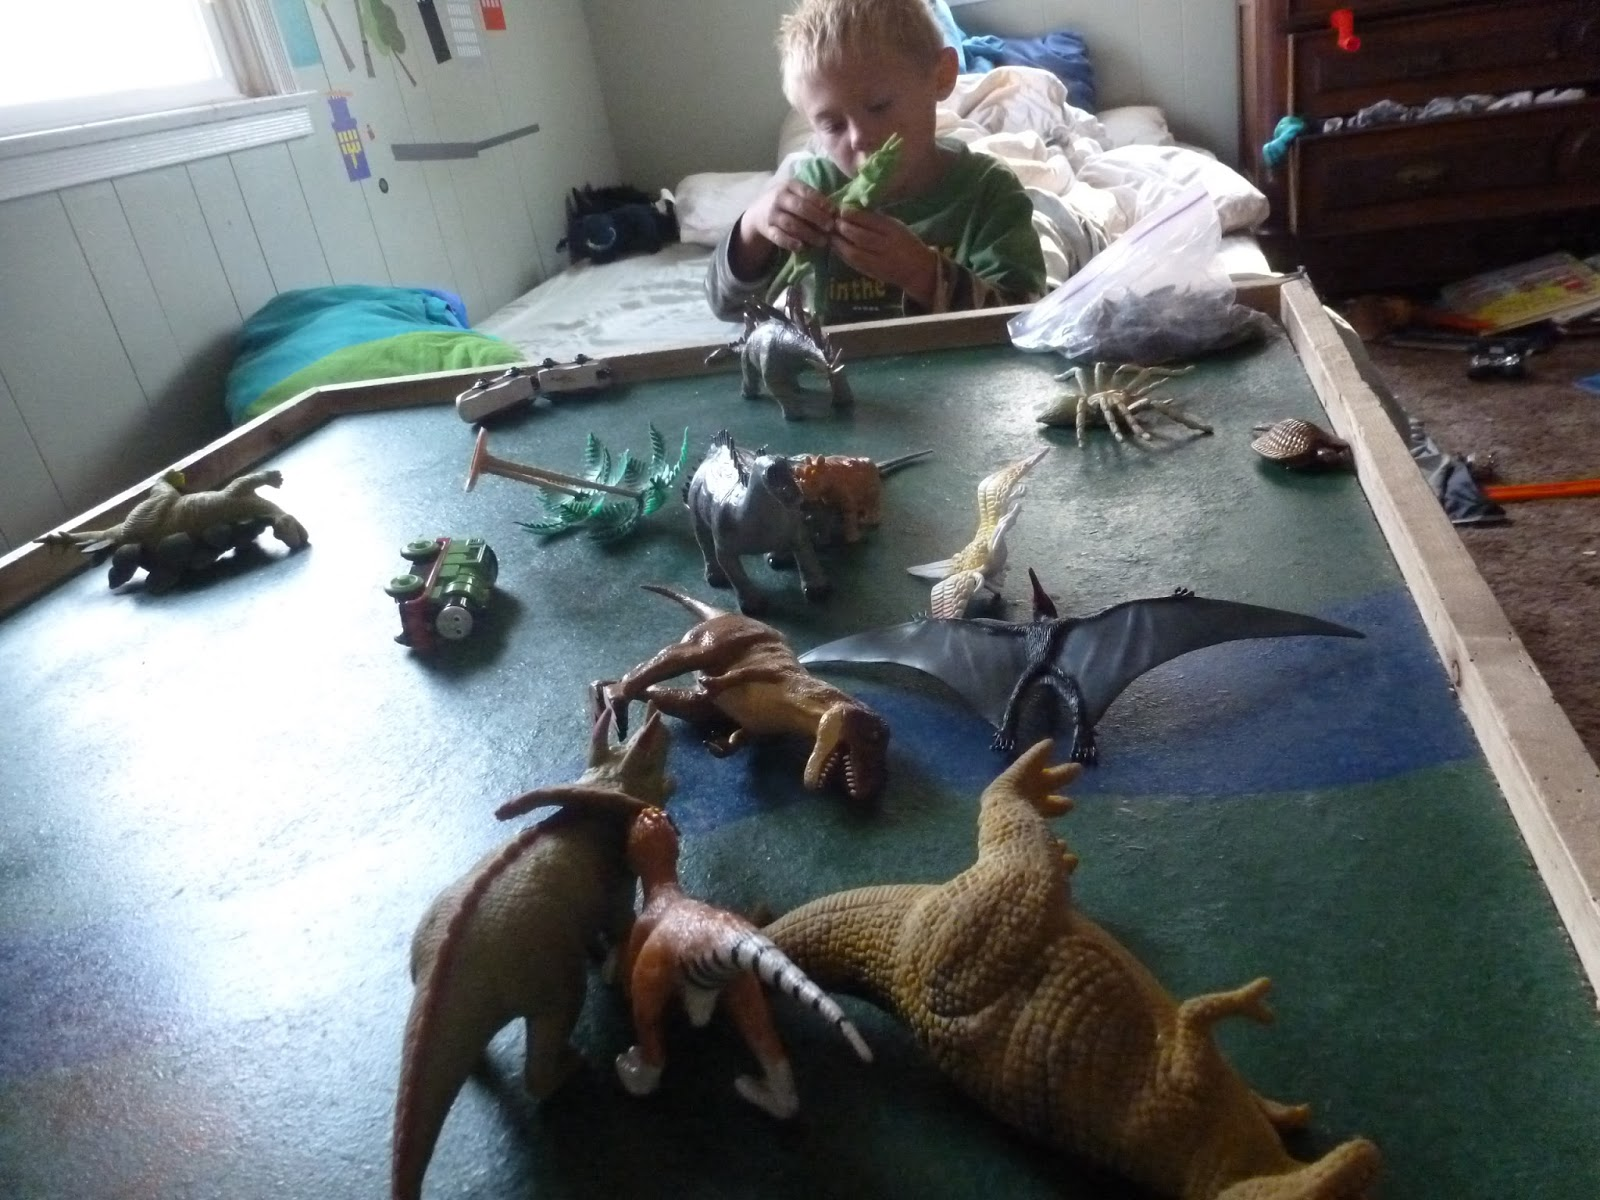 Booky Kids The American Booksellers Association Origami Dinosaurs A List Of Online Origamidinosaur Diagrams Our Path To Dinosaur Fanaticsmy Son Oscar Loves Sharks One Day While I Was Working At Bookstore Someone Brought In Box Used Books That Included An